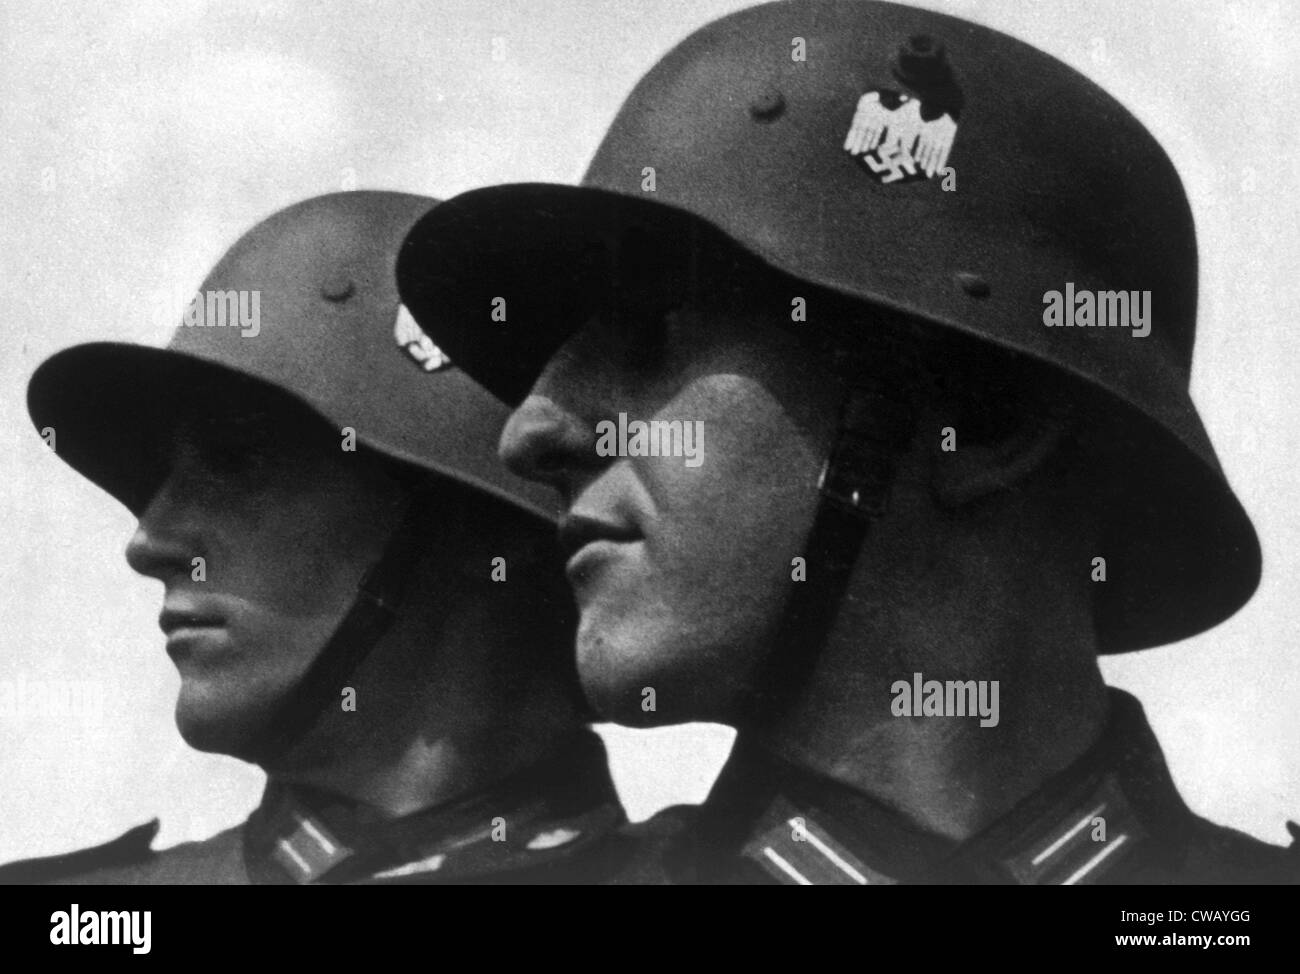 Nazi Germany, The Wehrmacht (armed forces), 1935. - Stock Image